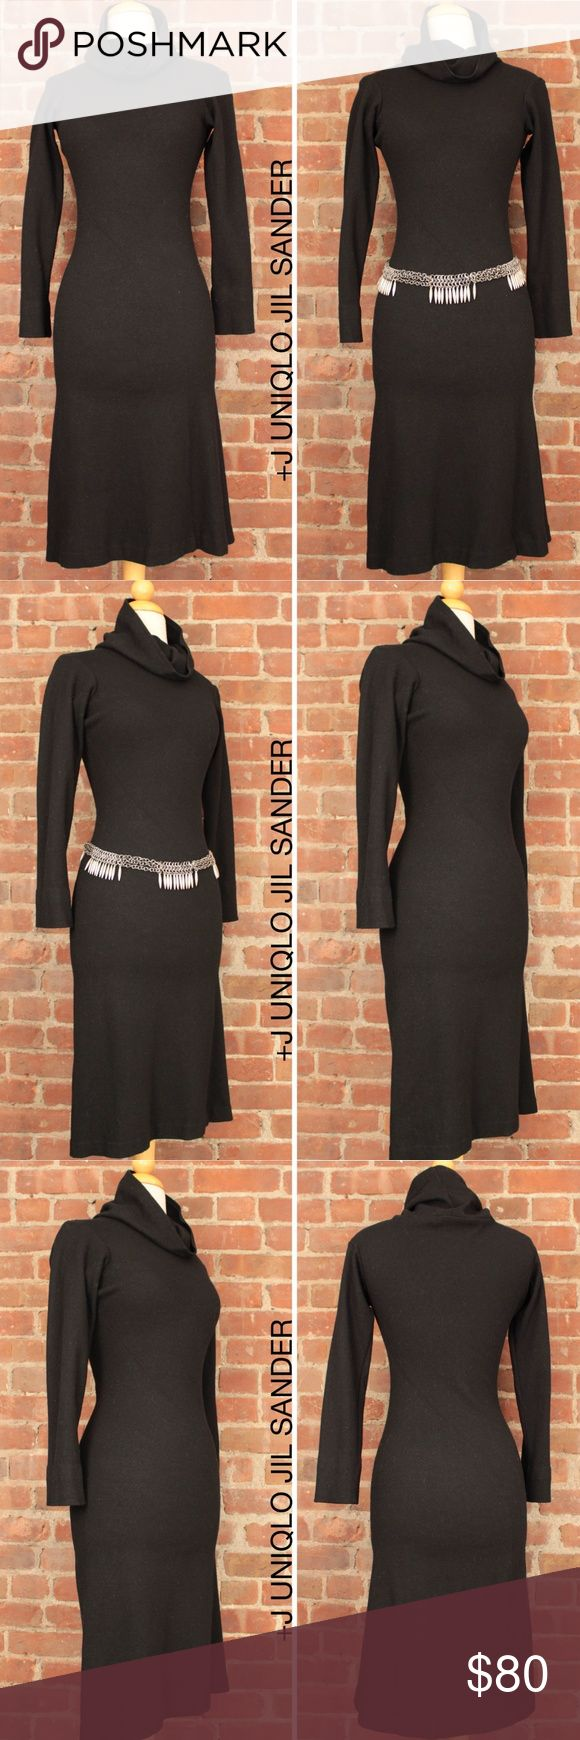 "Bias Cut Cowl Neck Fitted Sweater Knee Dress 299 JIL SANDER Cowl Neck Dress Wool Long Jersey Sleeve Black Bias Fit +J Modest but sexy and slimming! Uniqlo Collaboration Cowl Neck Double Wool Jersey Bias Cut Mid Calf Length Fitted Mermaid Flare Bias. It is made of double stretchy wool and cut on the bias.   Retails: $150 Size: Small   Armpit to Armpit: 16"" Length: 40"" Shoulder: 17"" Sleeves: 21"" Waist: 13"" Condition: Very Good! Comes from smoke and pet free environment! SKU: 299 All…"